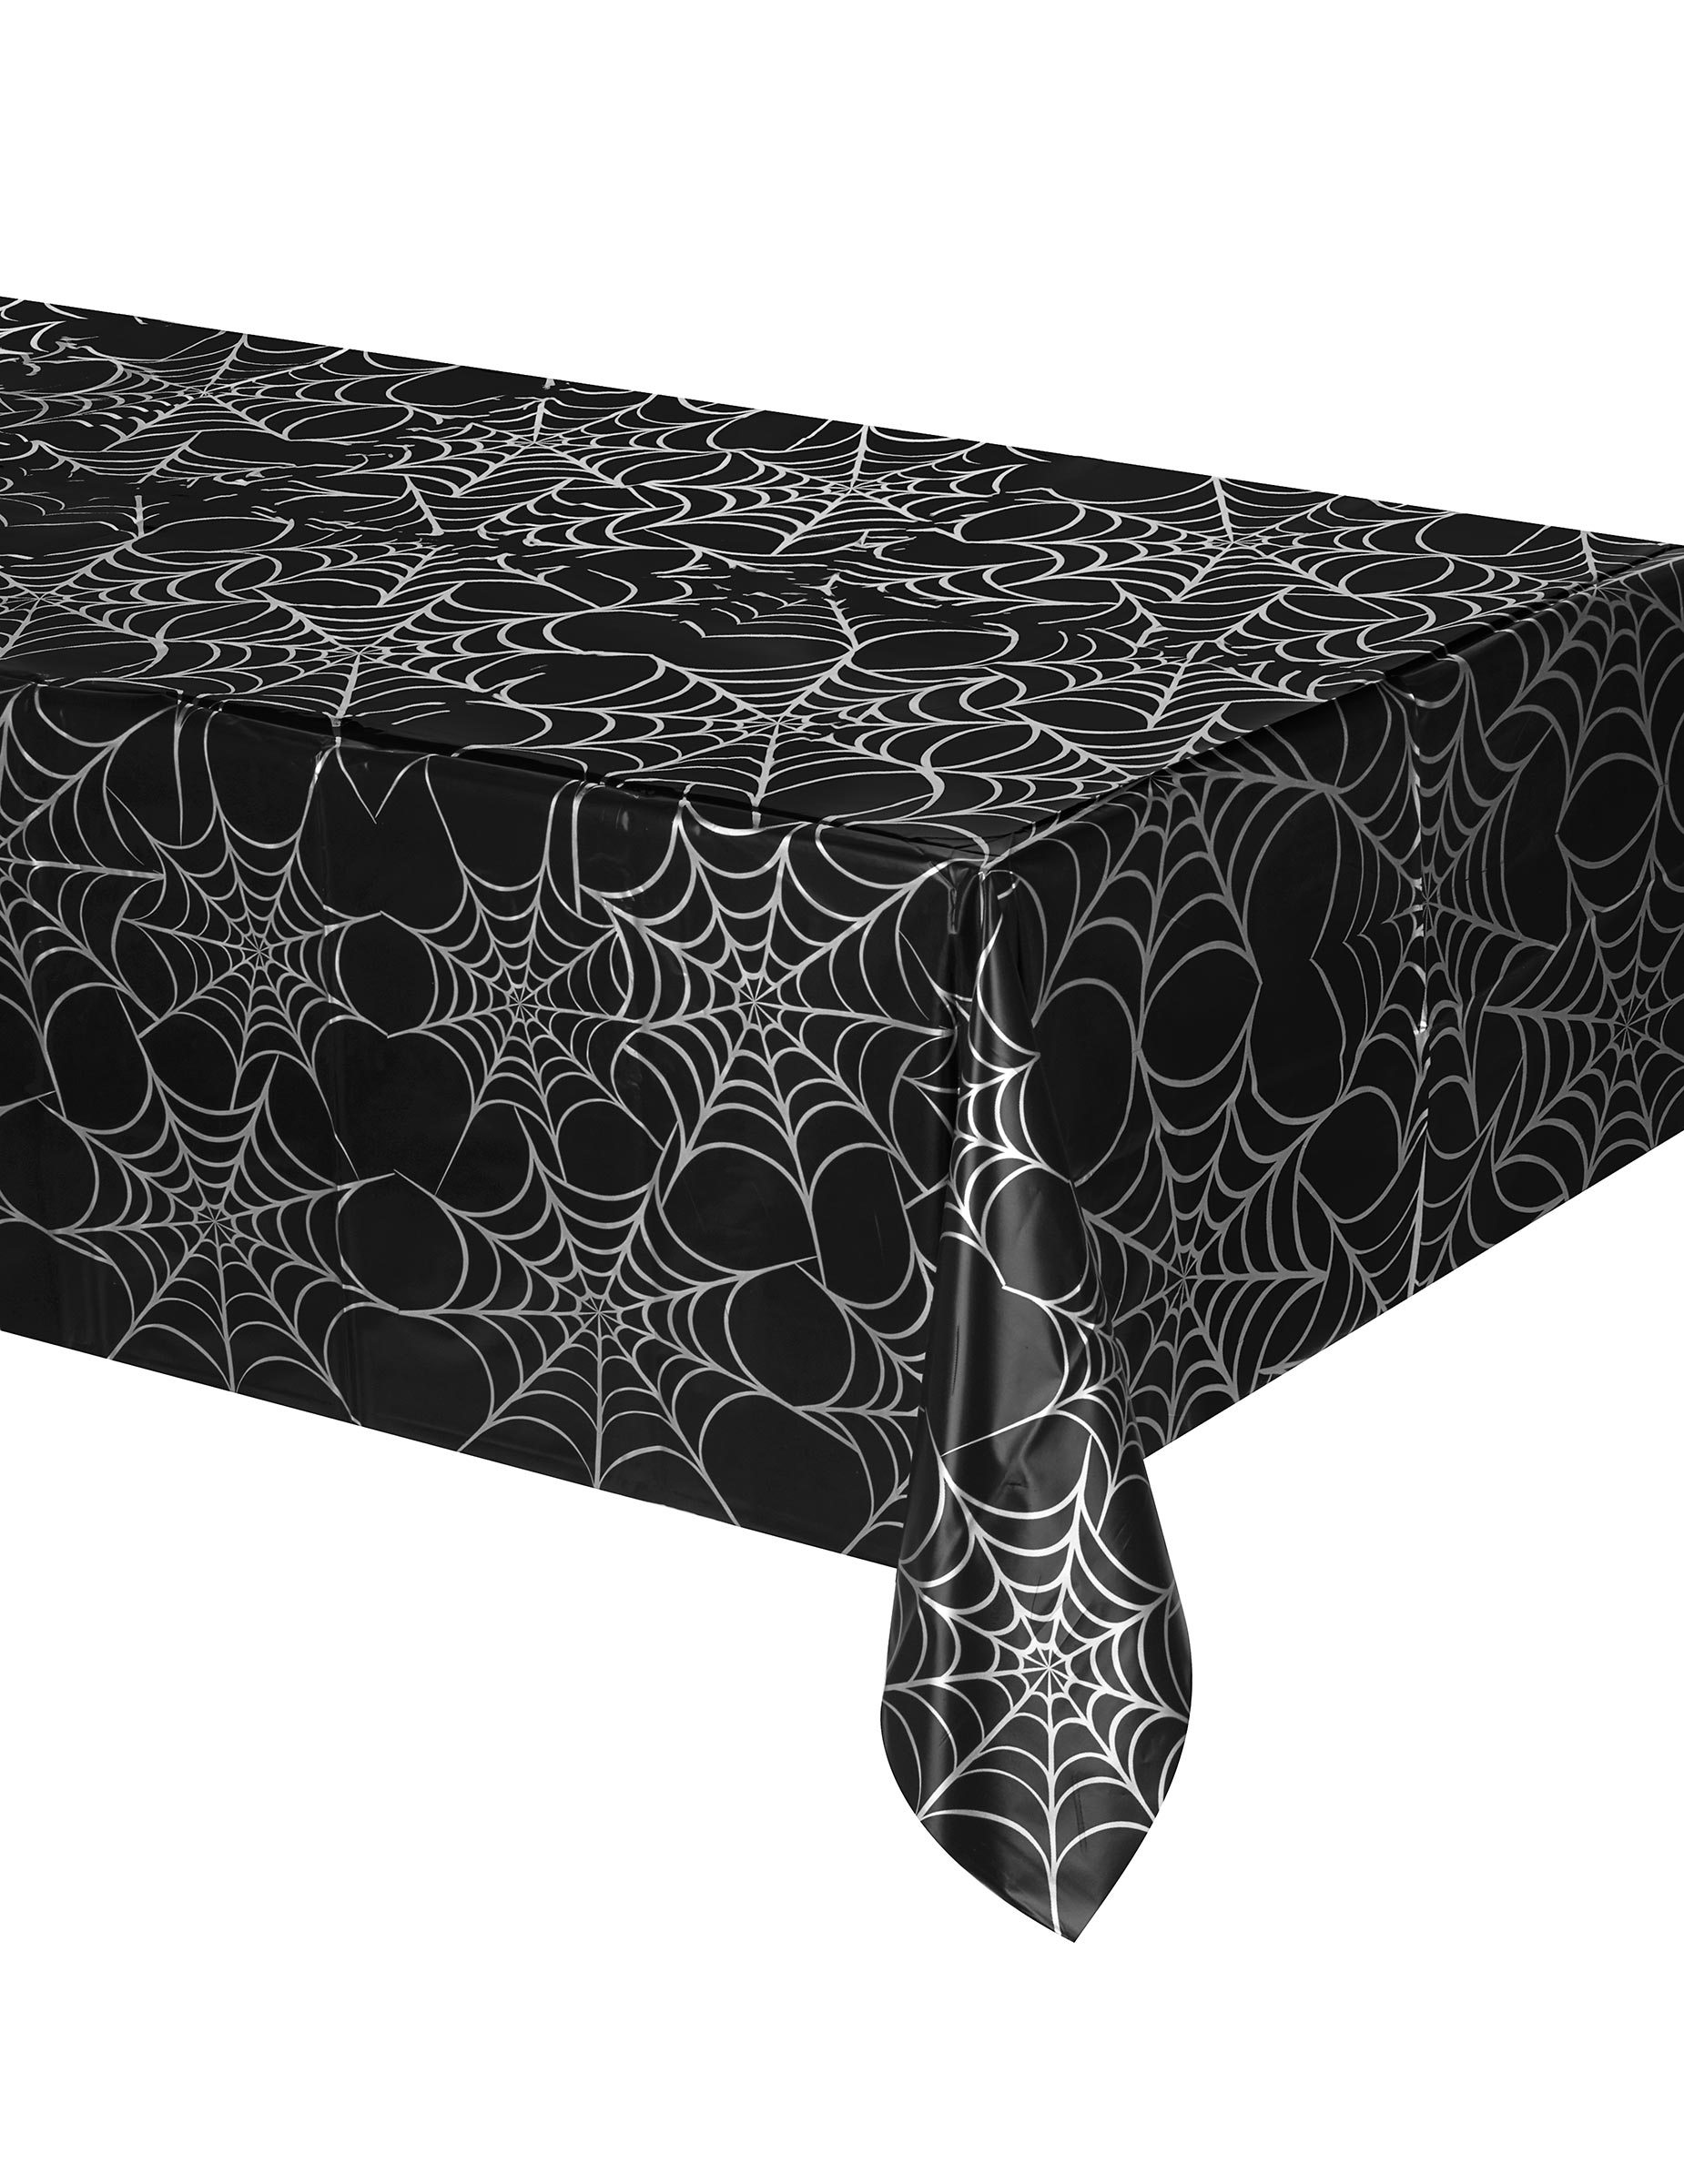 spinnen tischdecke halloween tischdeko spinnennetz schwarz. Black Bedroom Furniture Sets. Home Design Ideas